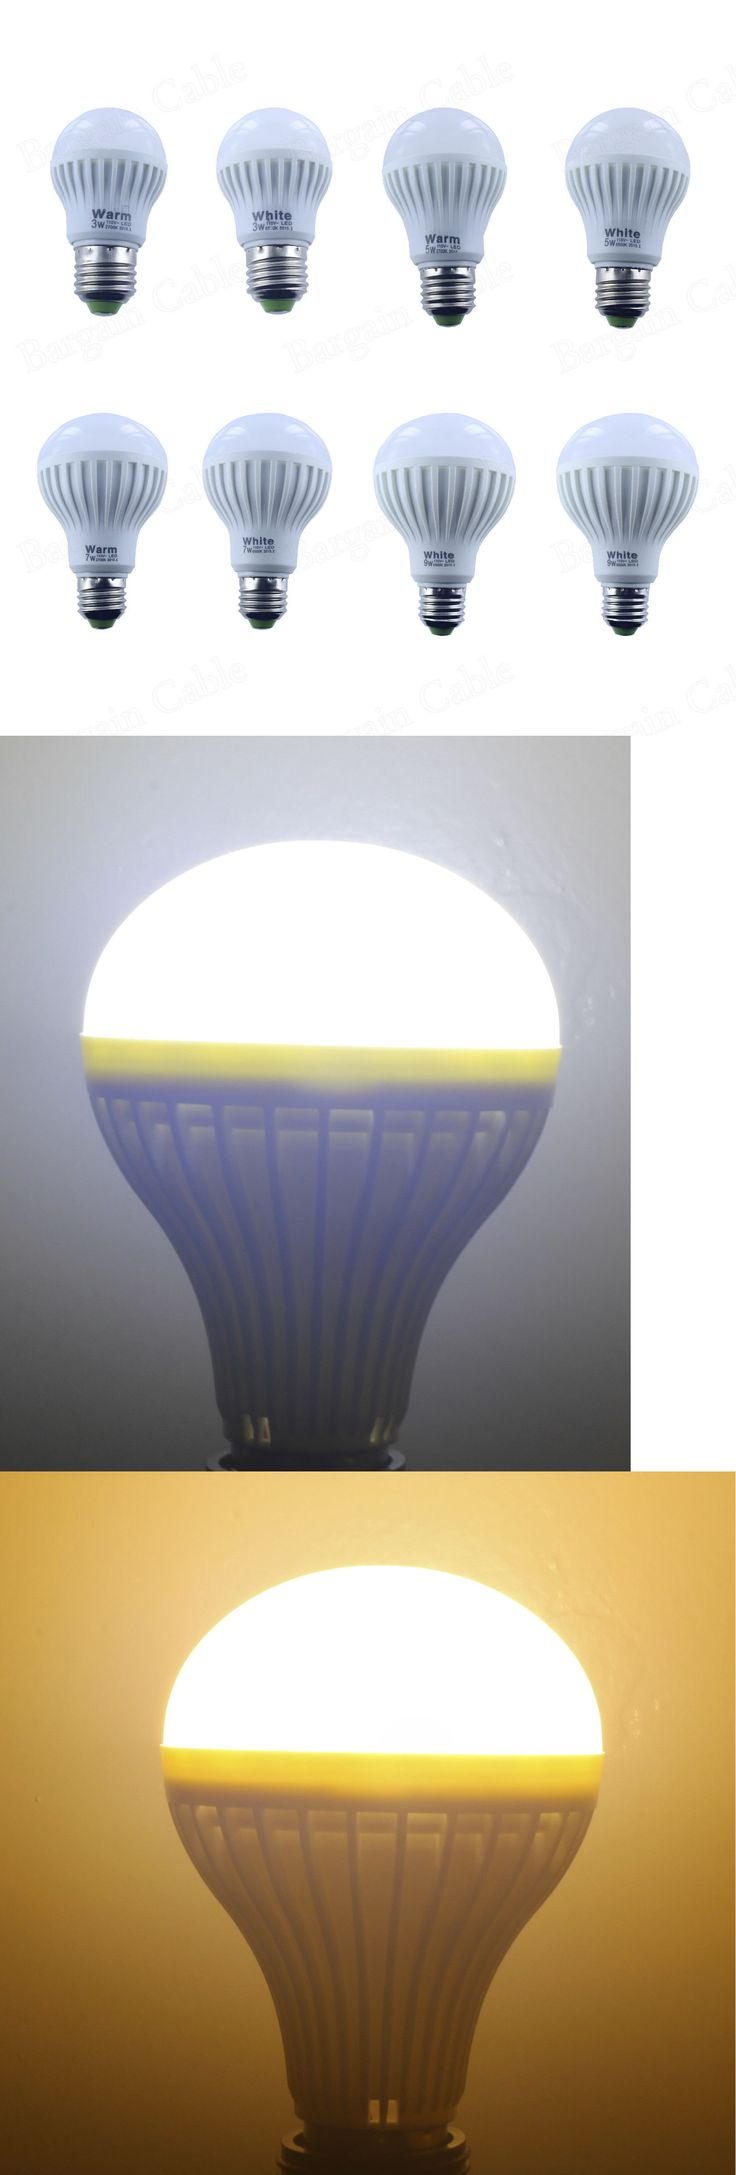 1000 images about lightbulb things on pinterest lightbulbs bulbs - Household Items 3w 5w 7w 9w 12w E26 Dimmable Non Dimmable 110v Warm Cool White